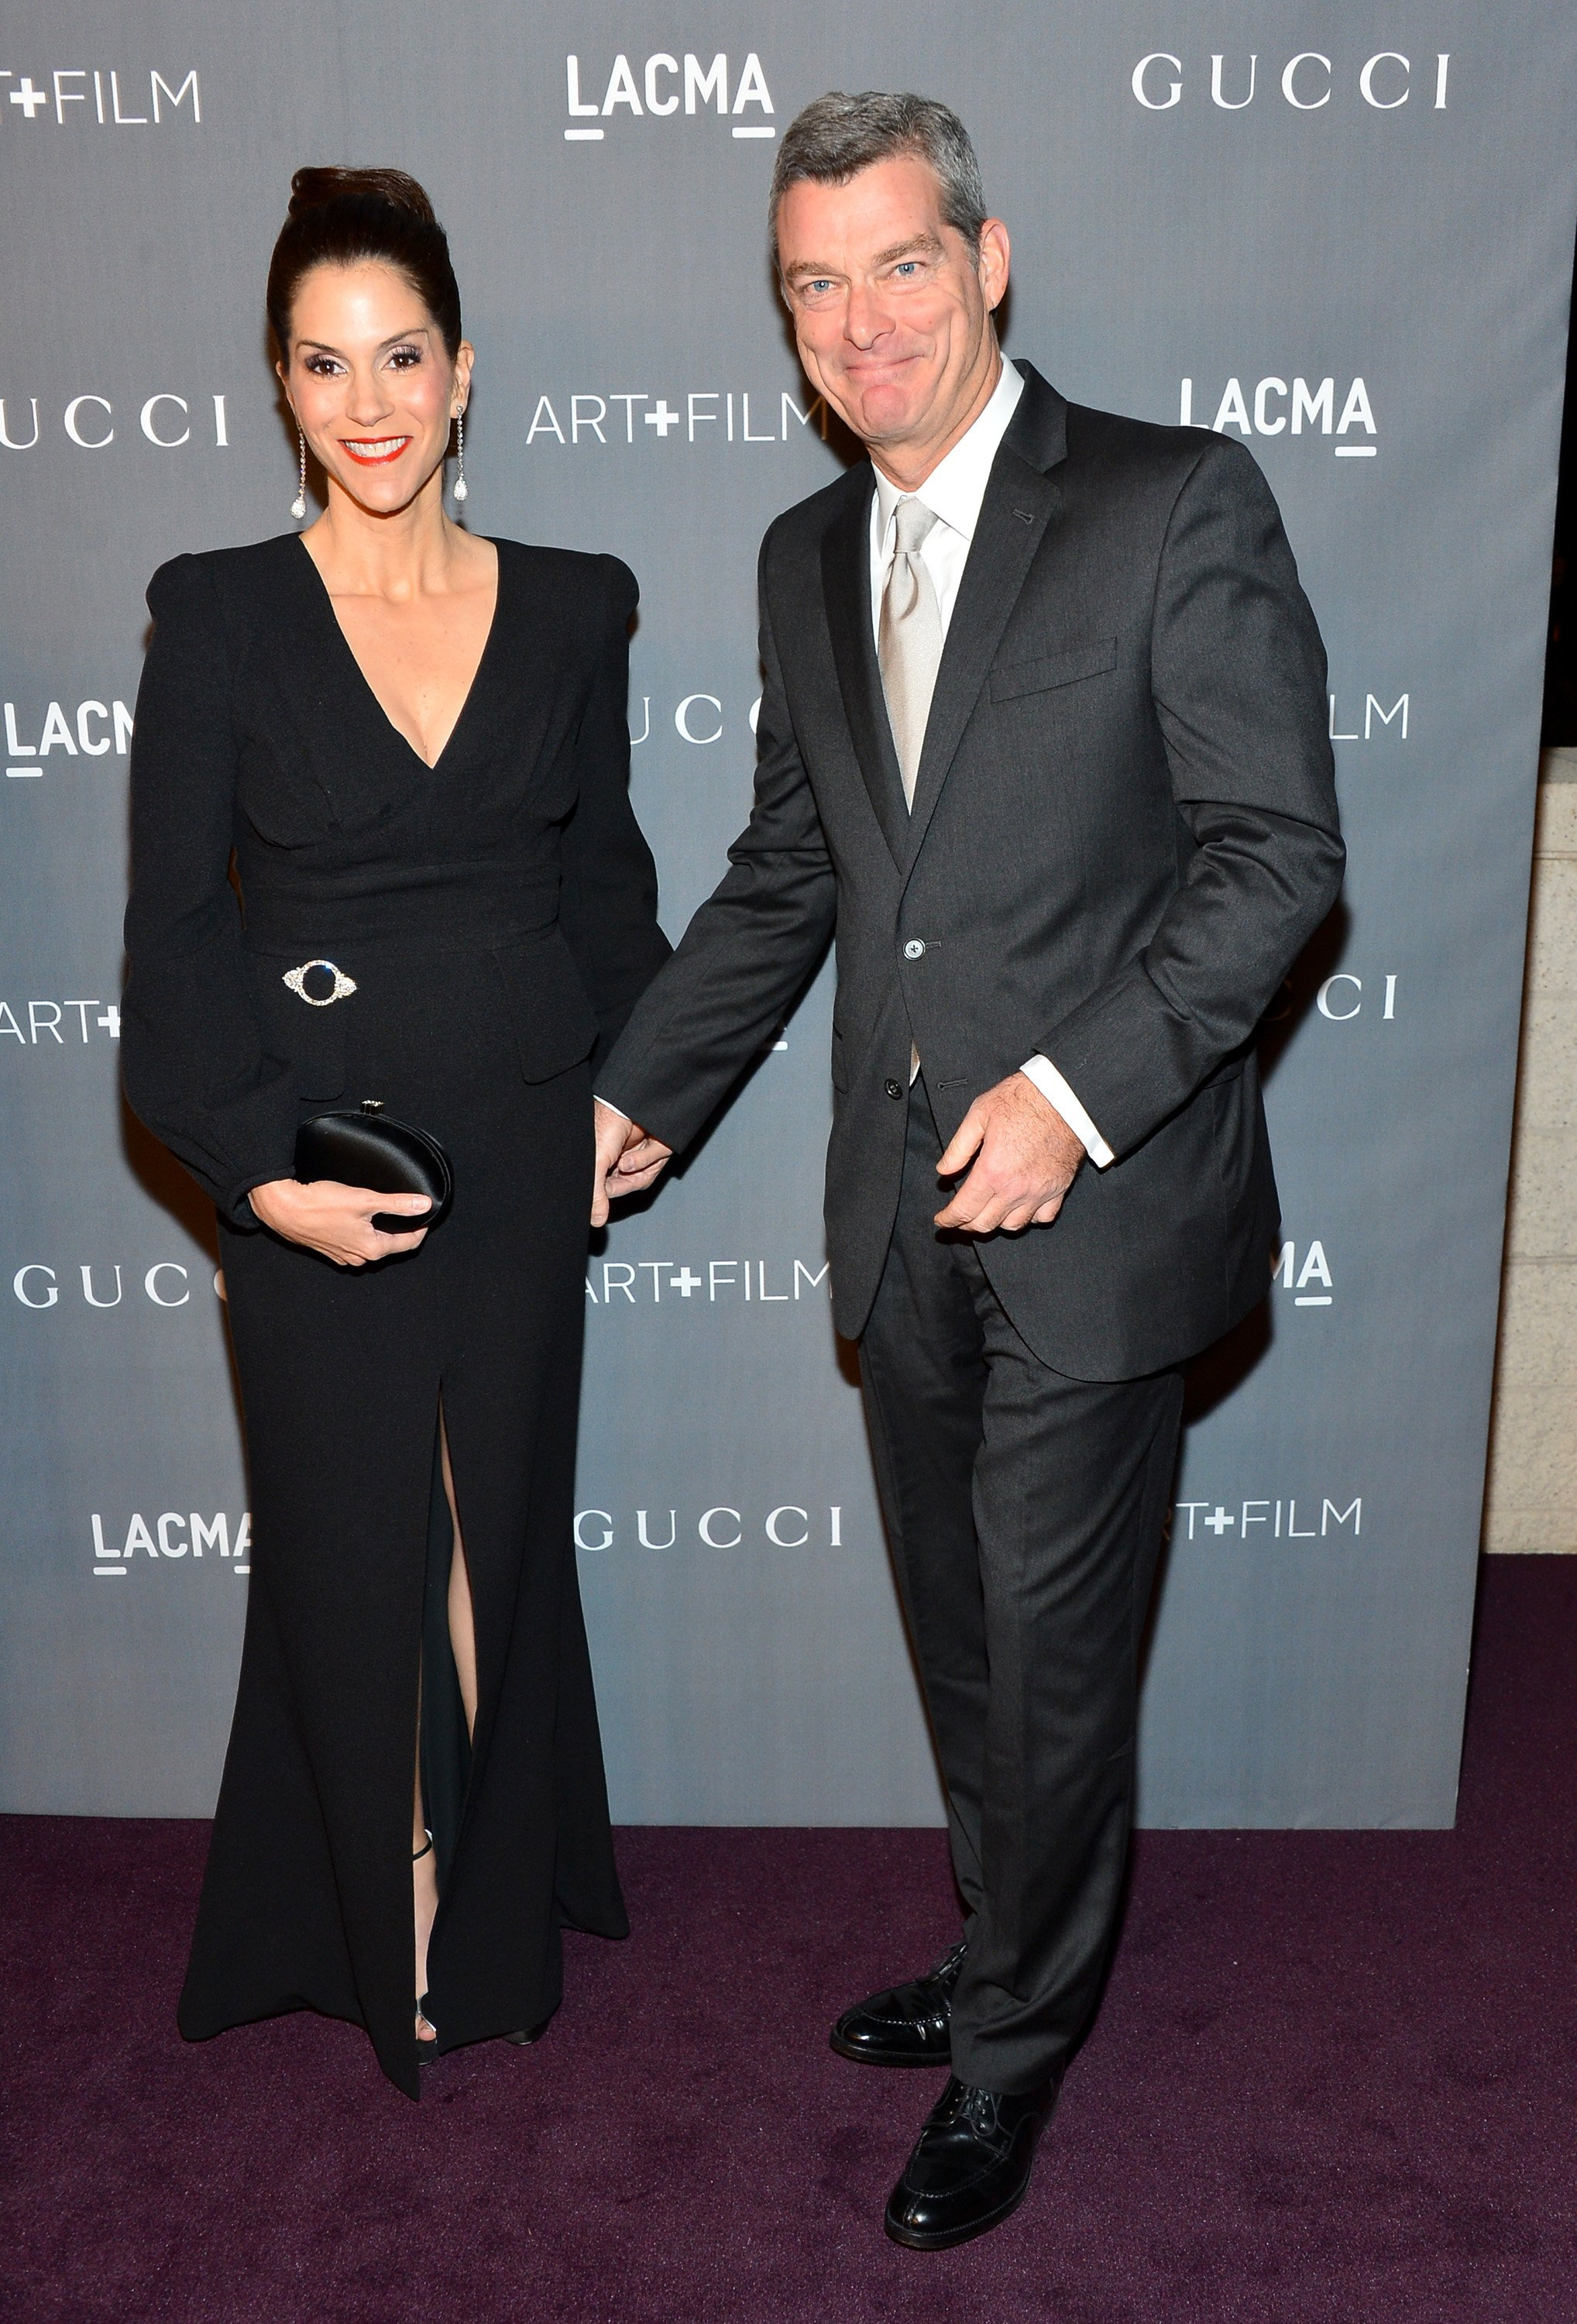 Jami Gertz and Antony Ressler arrive at LACMA 2012 Art + Film Gala at LACMA on October 27, 2012. | Source: Getty Images